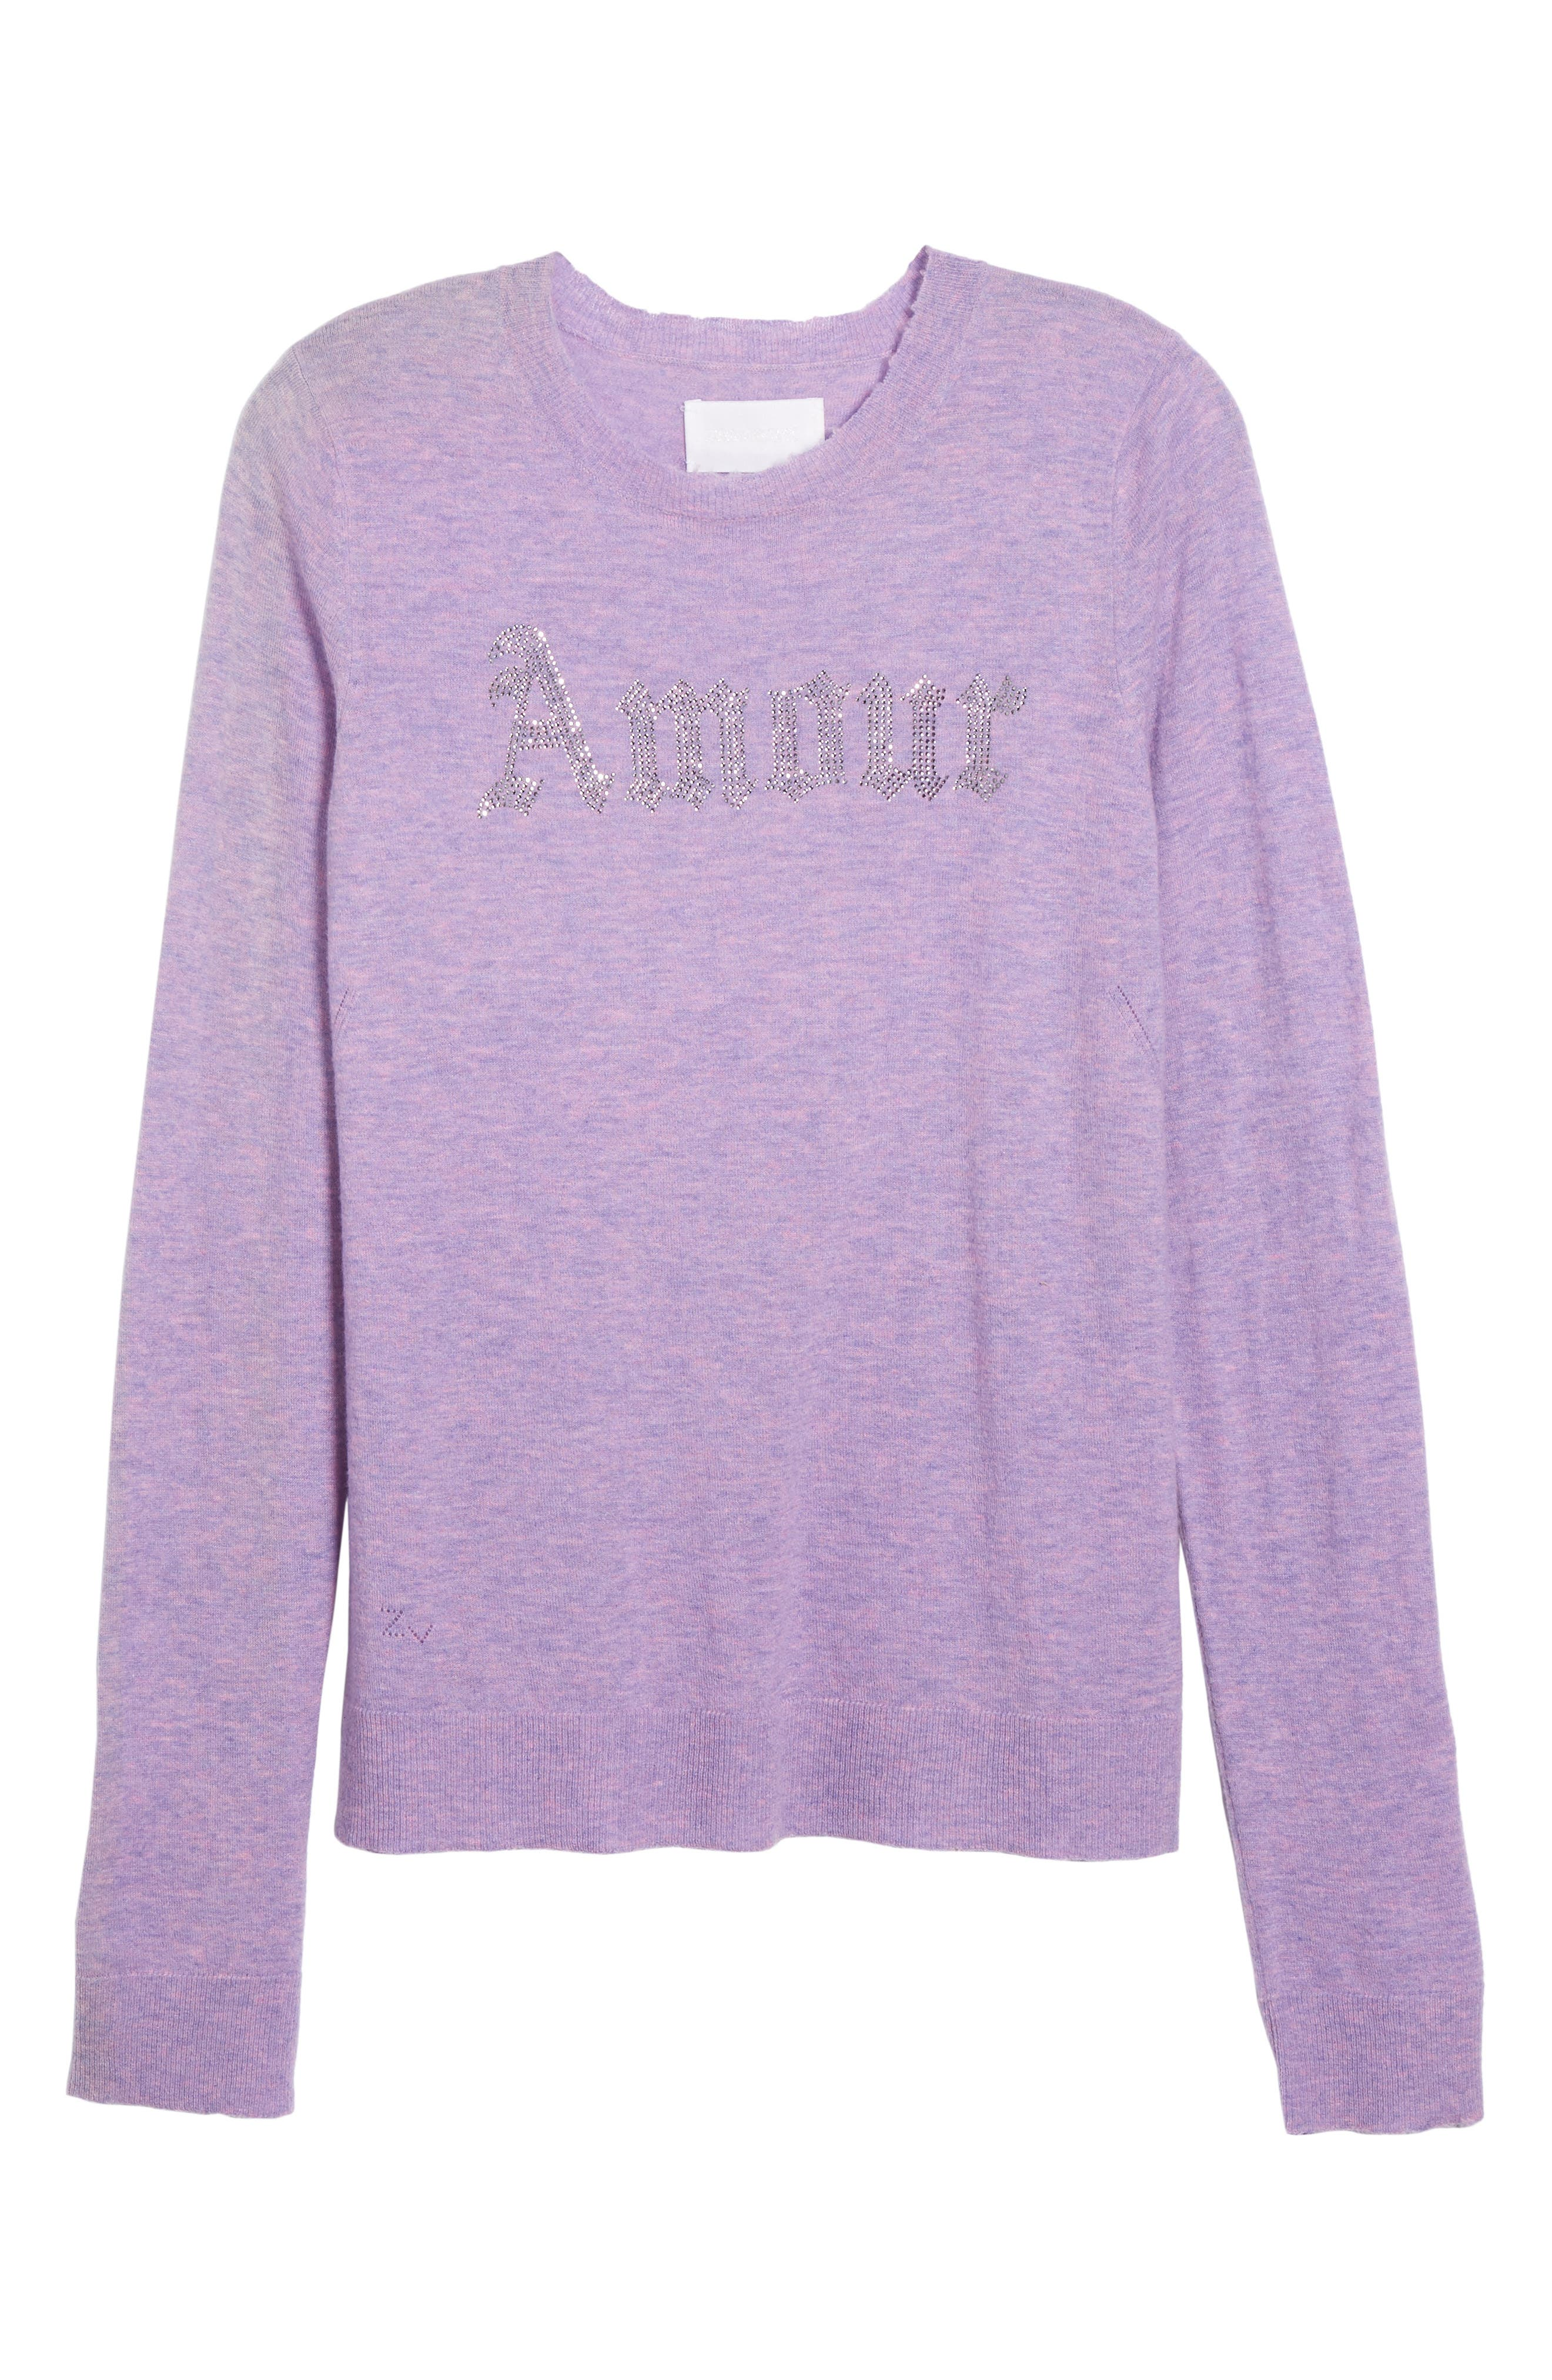 Miss Bis Cashmere Sweater,                             Alternate thumbnail 6, color,                             Lilac